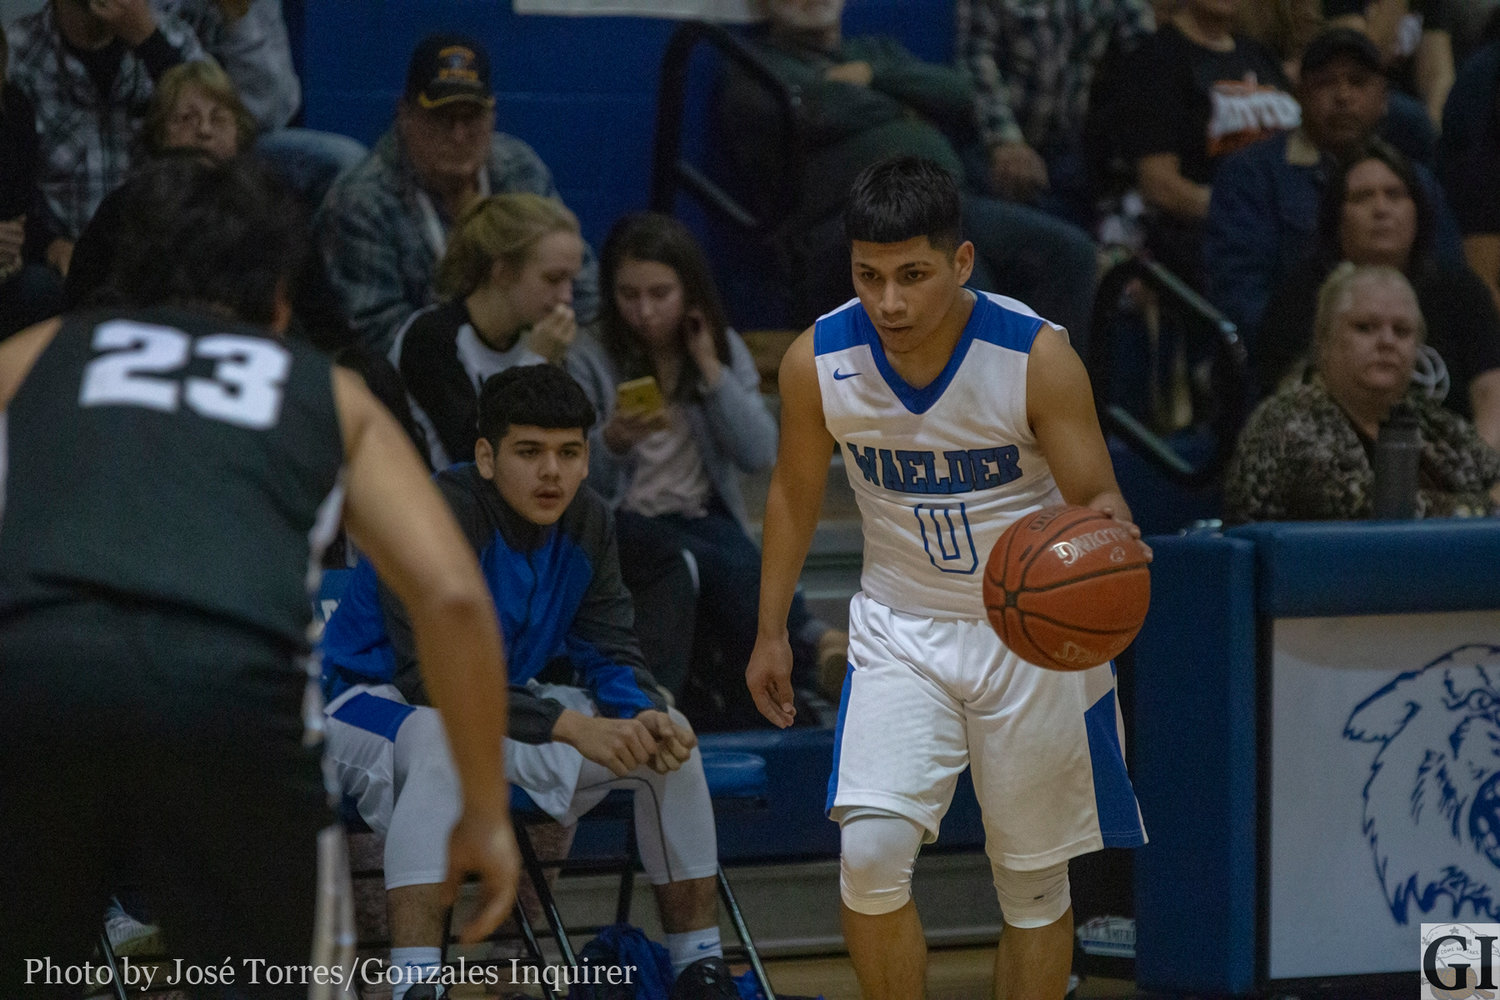 Carlos Reyes (0) ended his night with seven points in Waelder's 50-45 overtime loss against Moulton on Tuesday.